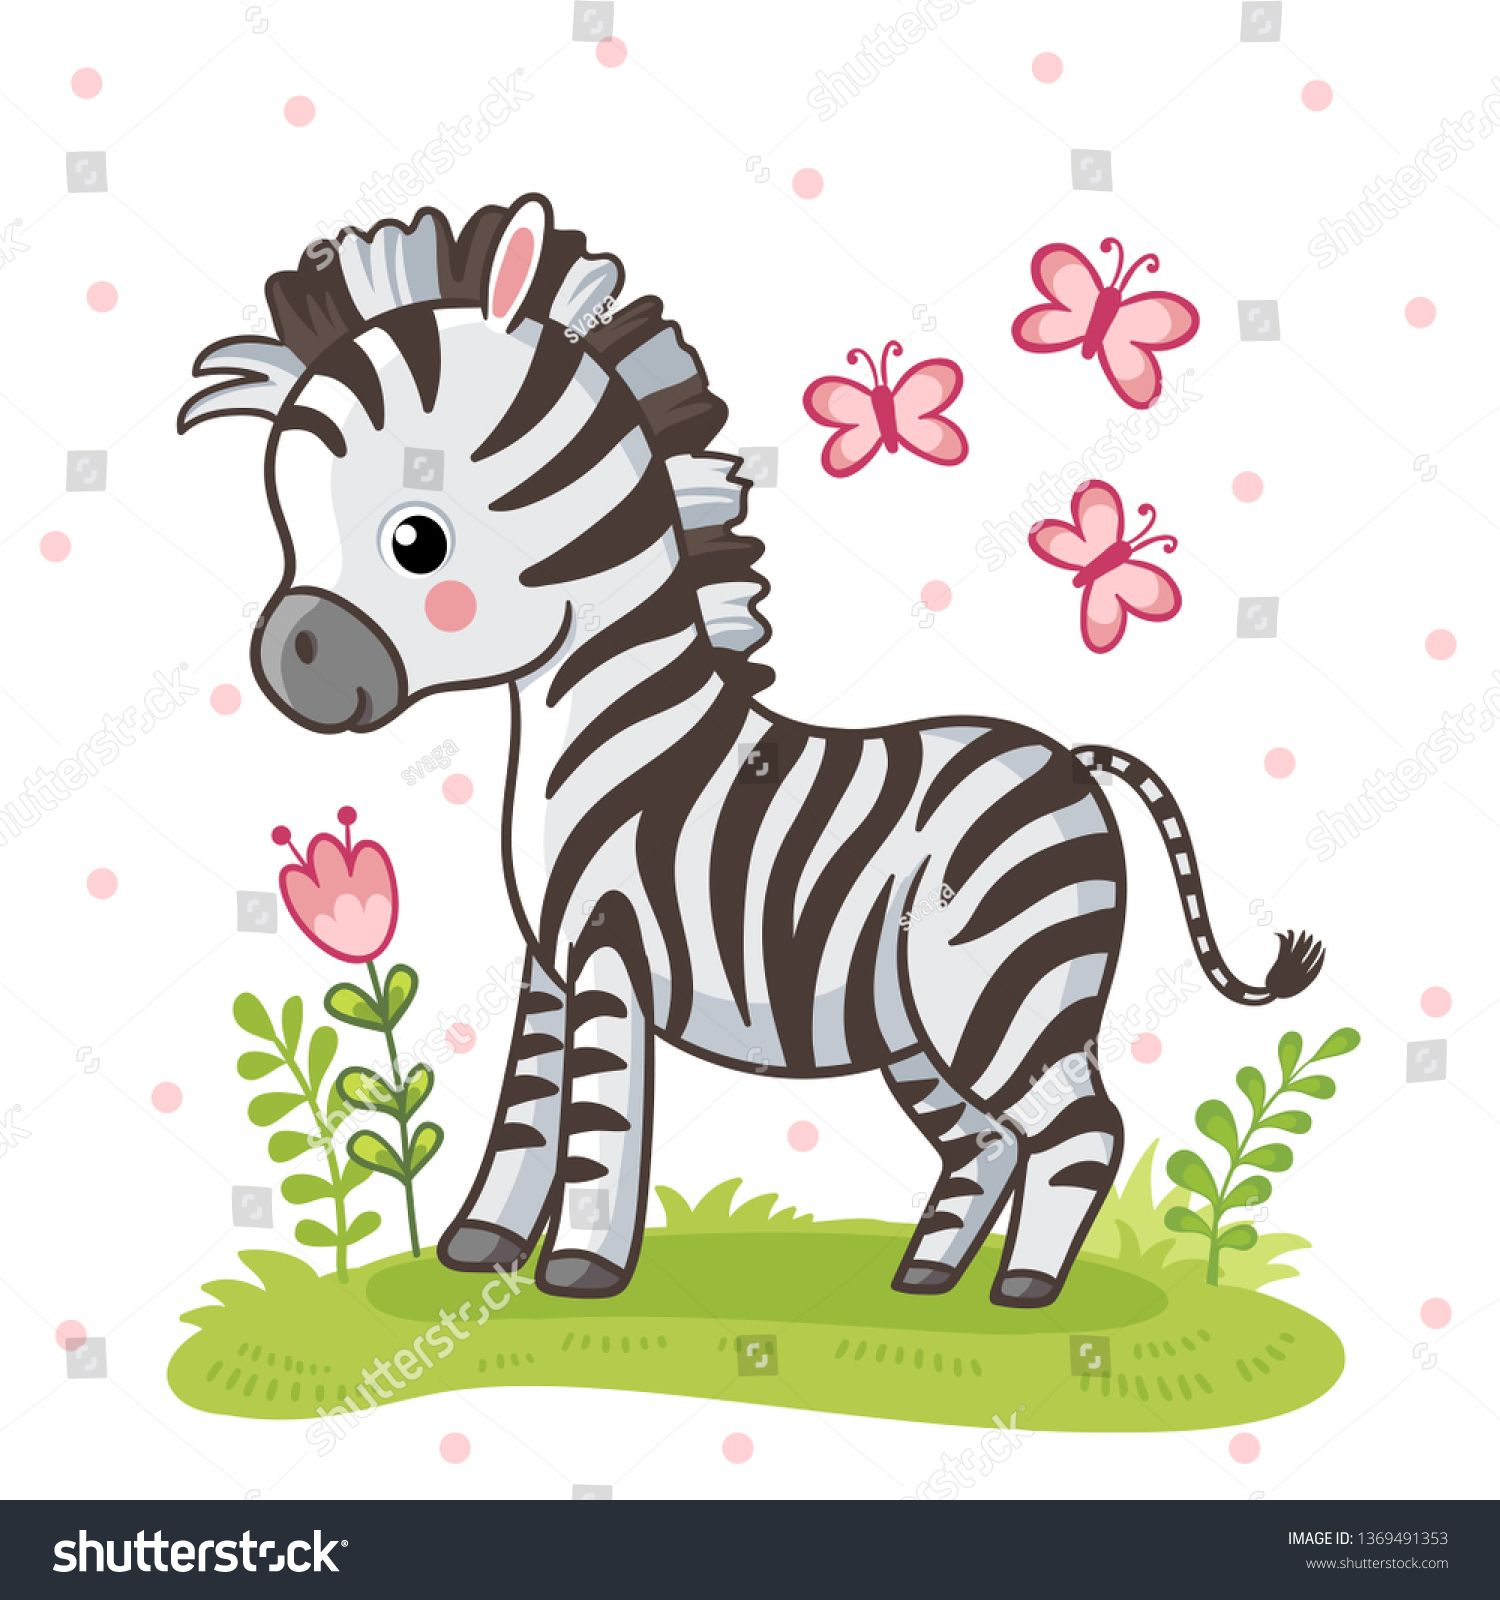 Zebra Standing On A Flower Meadow Cute African Animal In Cartoon Style Vector Illustration Image Vector Zebra Cartoon Zebra Drawing Cute Cartoon Animals